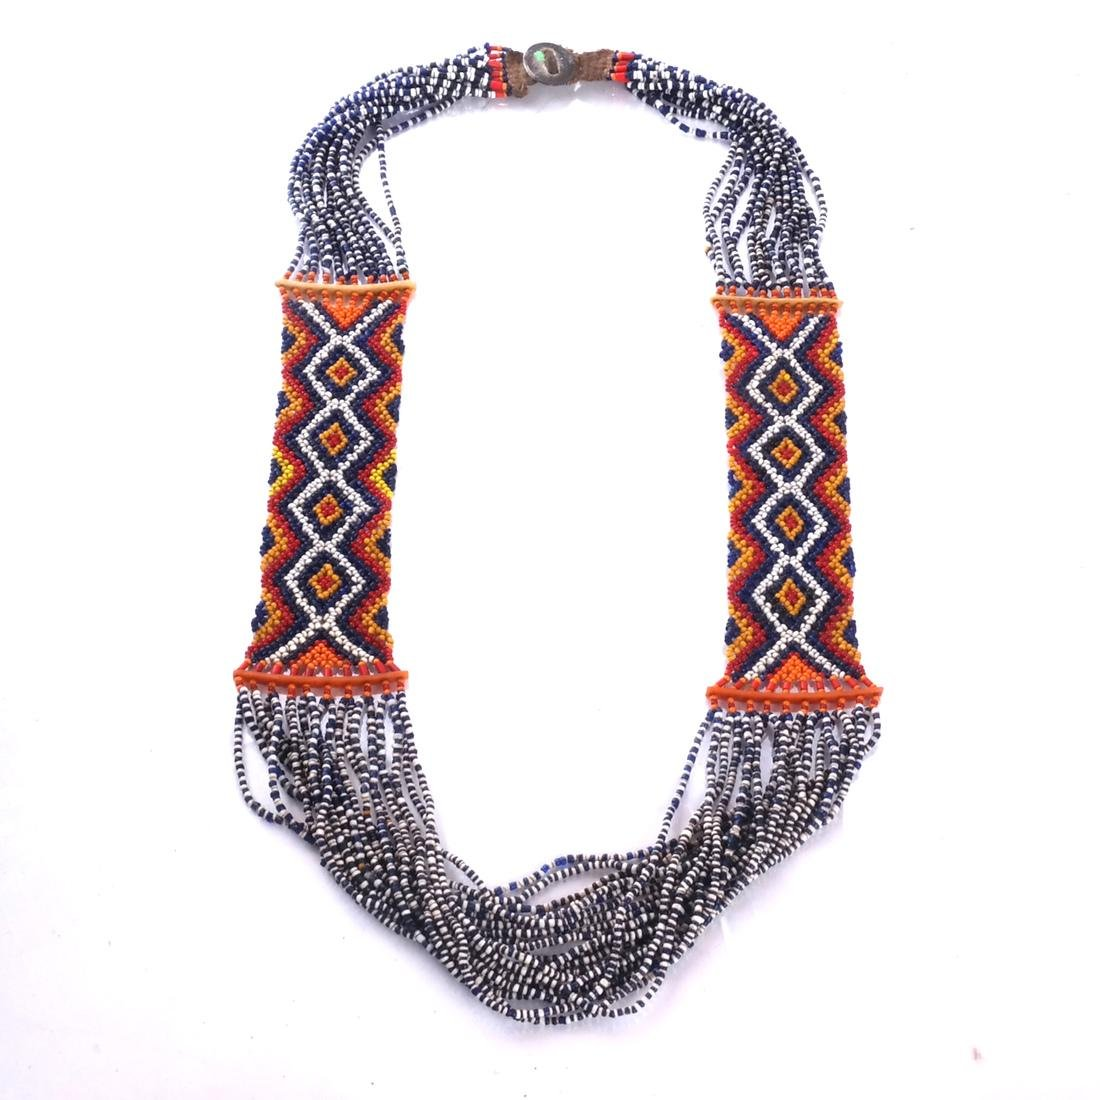 Asian, Tribal Necklaces and Accessories - 9